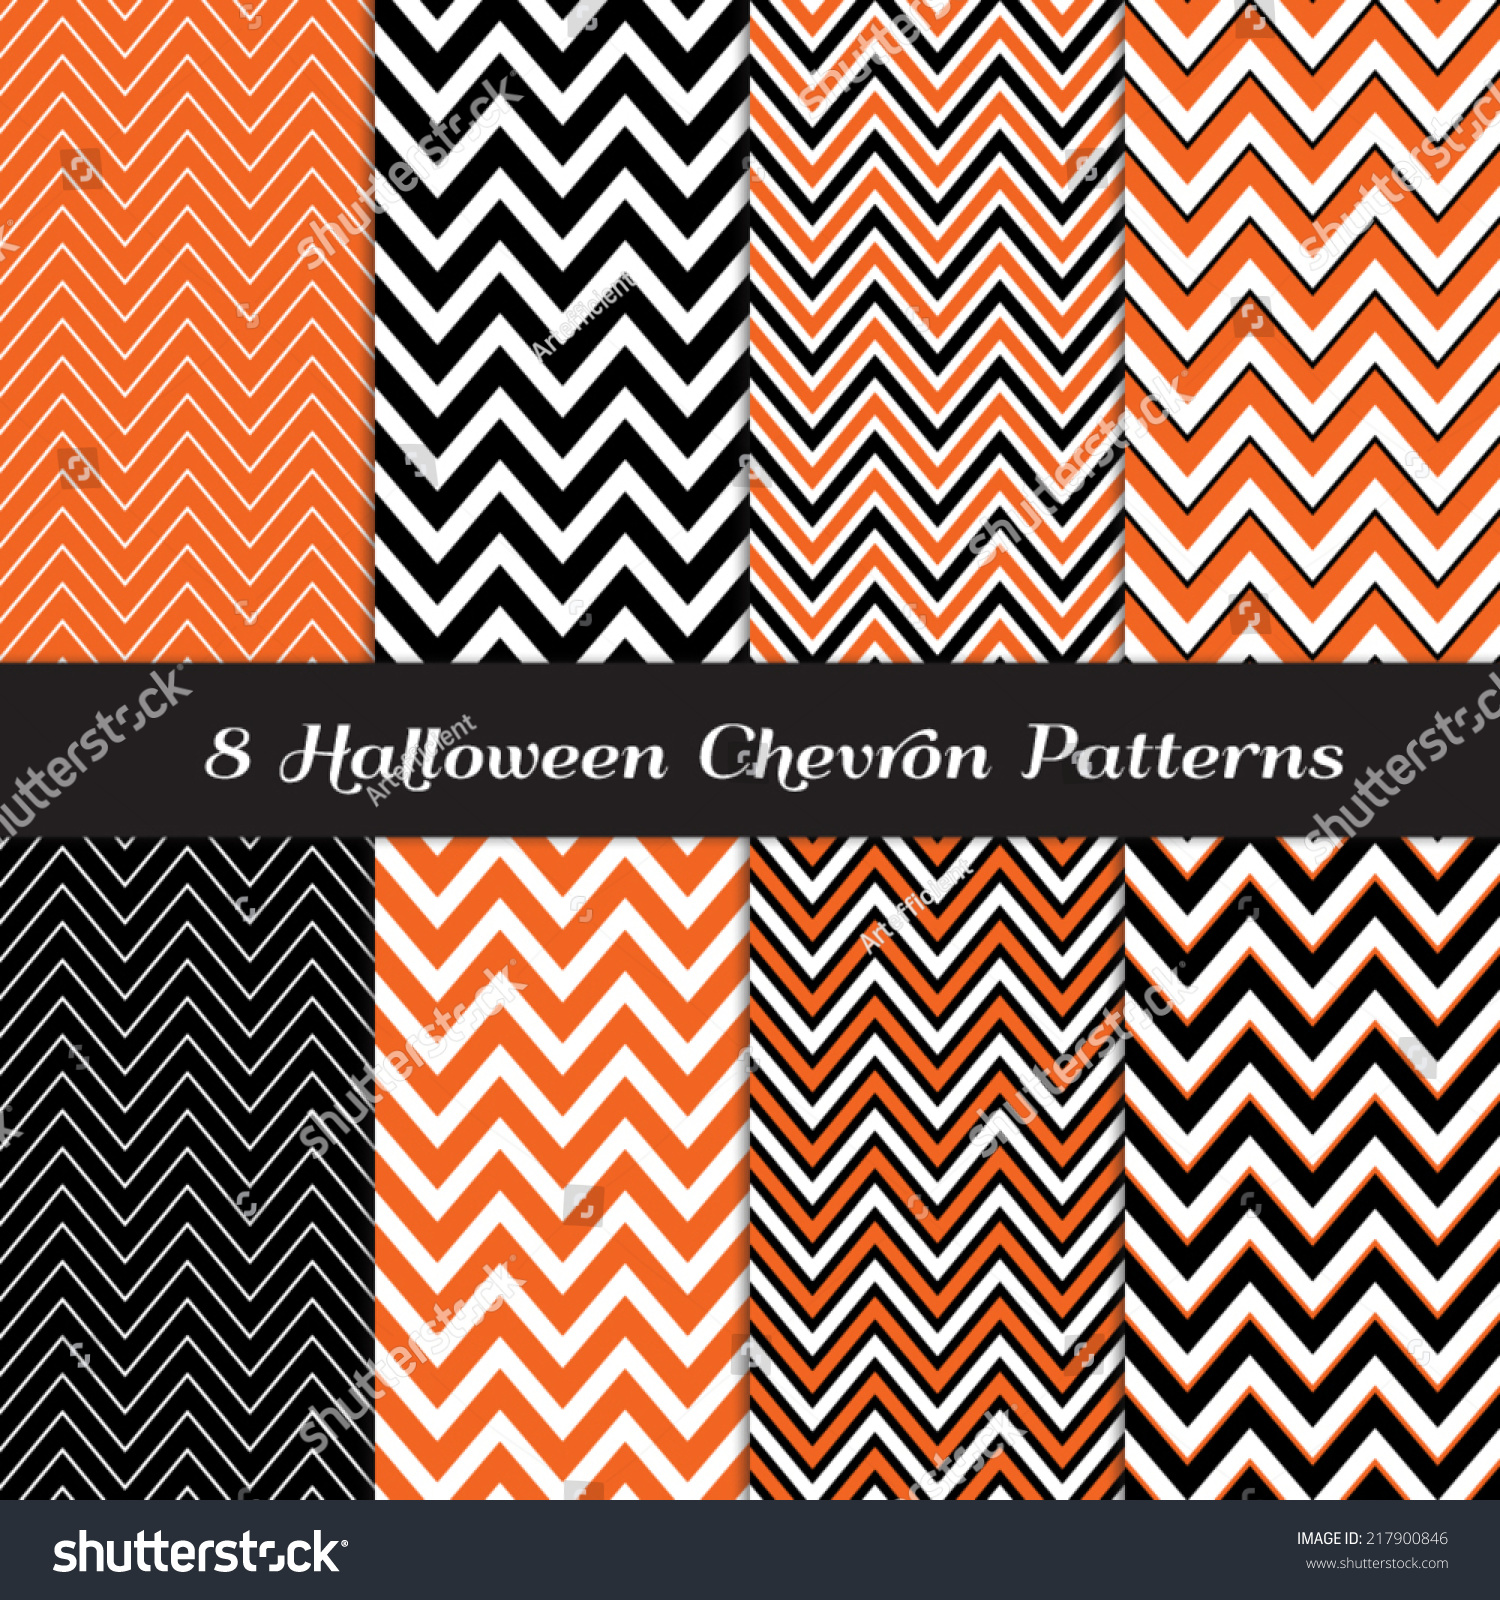 Halloween chevron in orange black and white thick